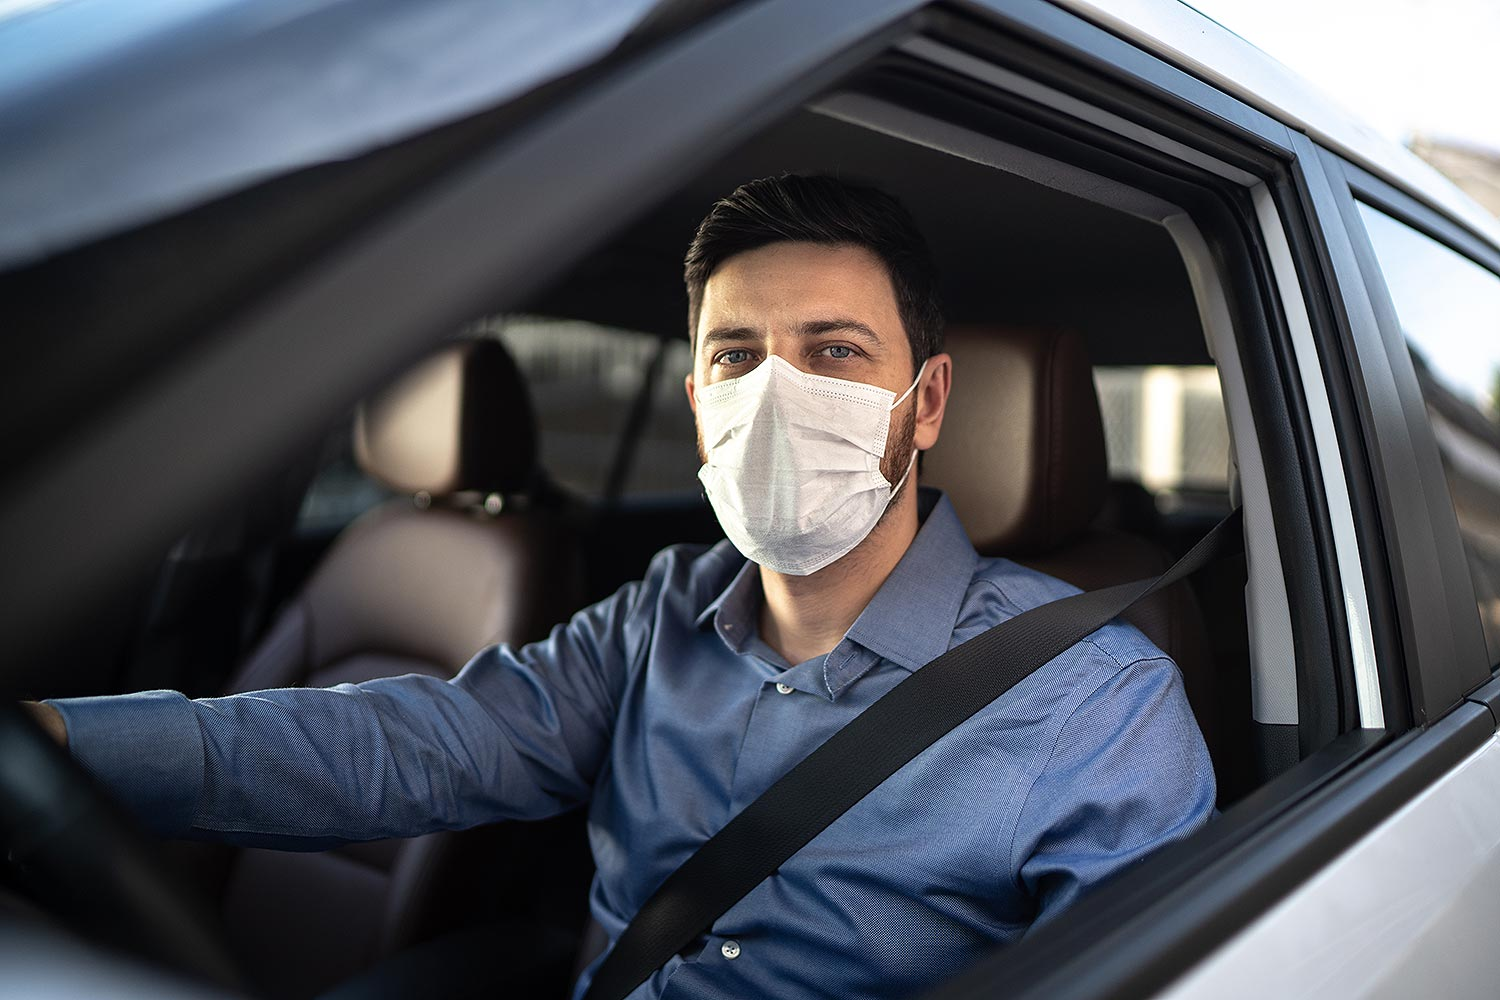 person driving wearing mask